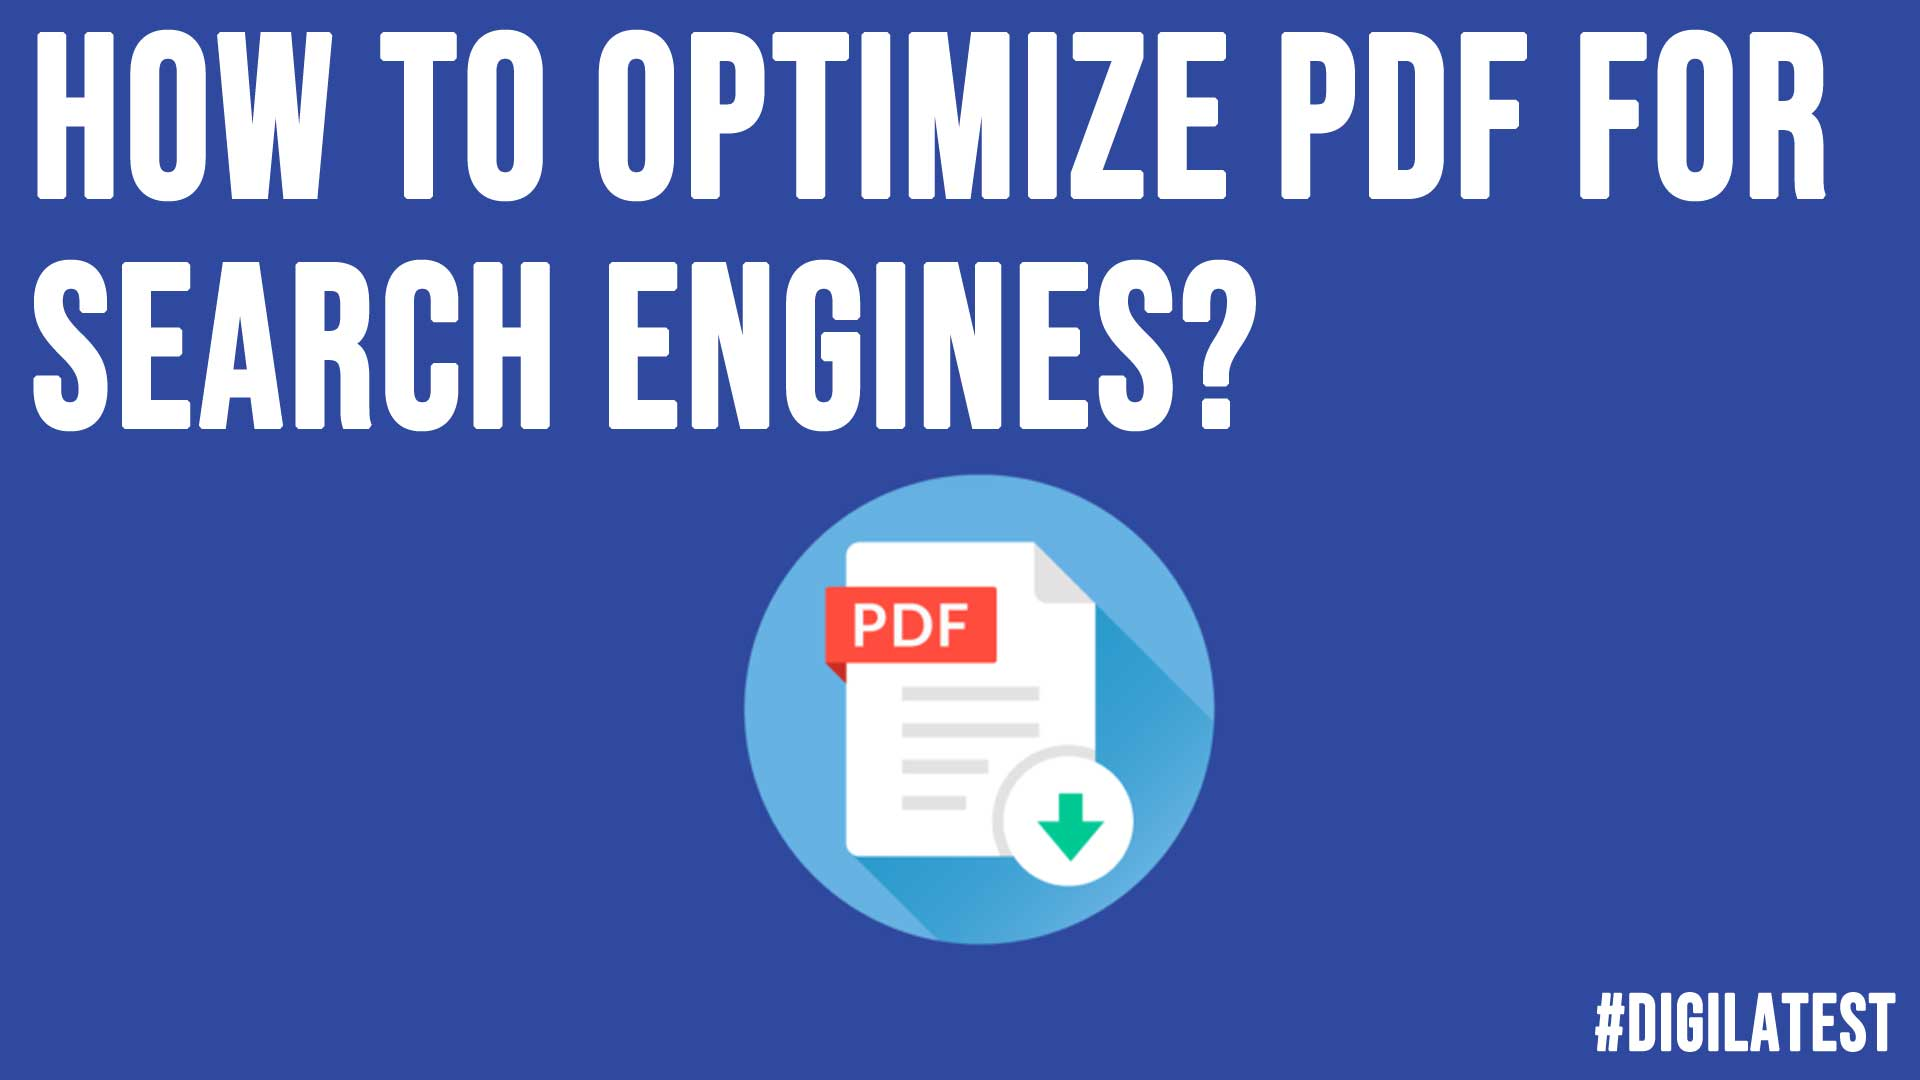 How to Optimize PDF for Search Engines